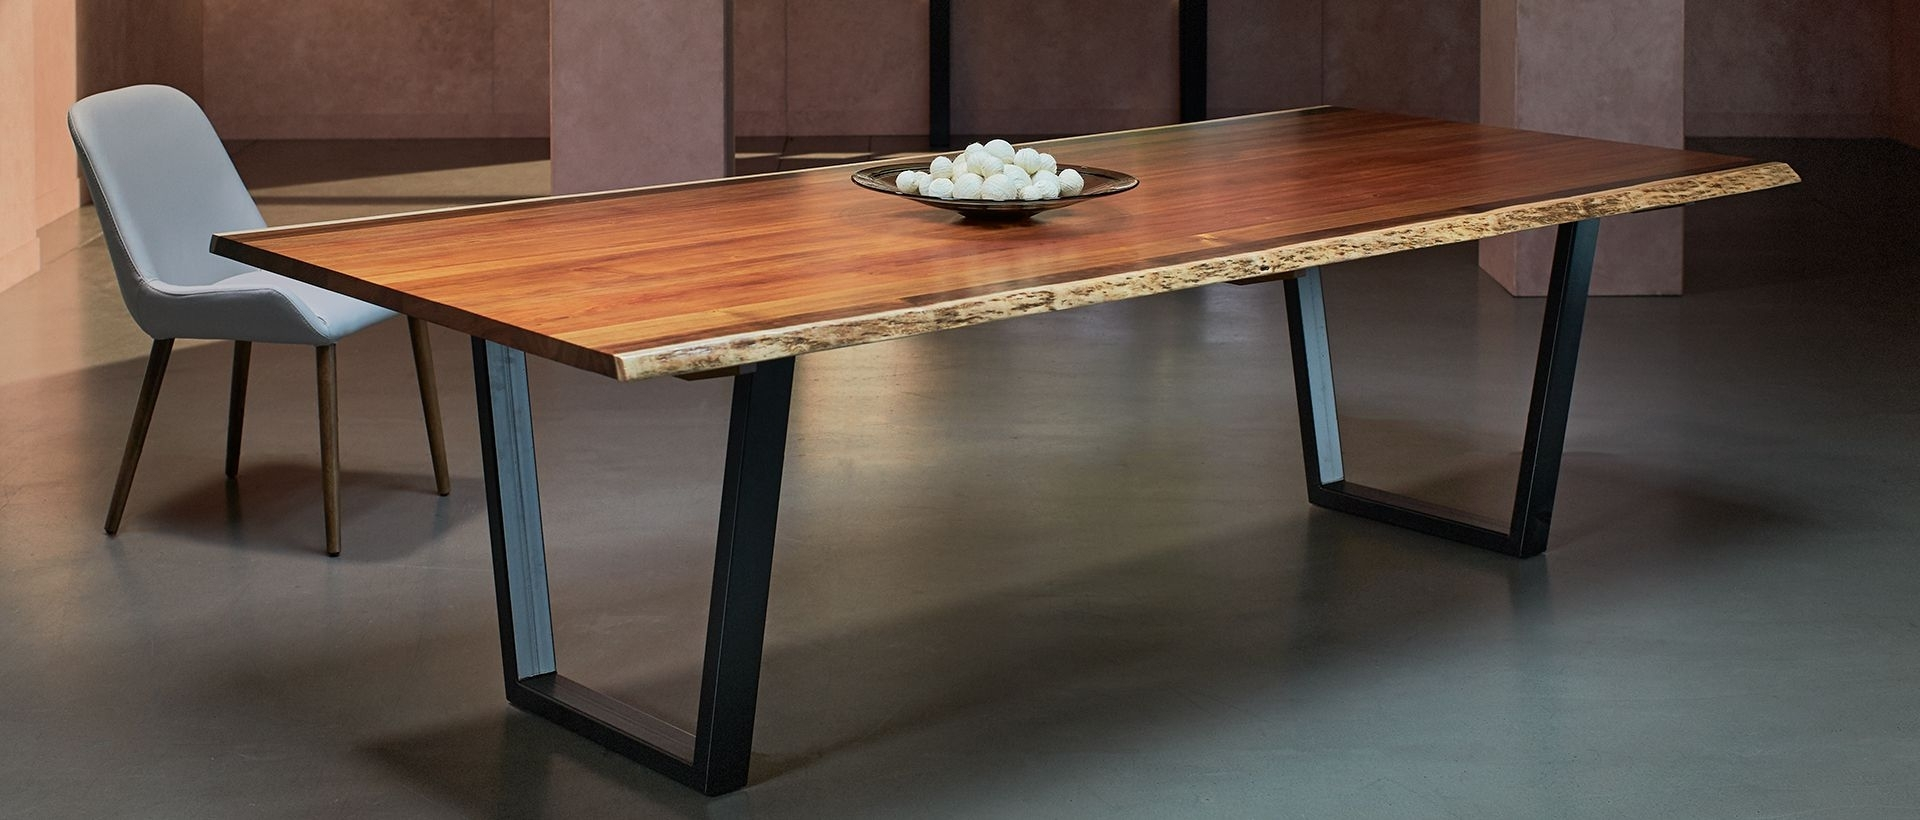 Most Recently Released Perth Dining Tables For Nick Scali (View 2 of 25)